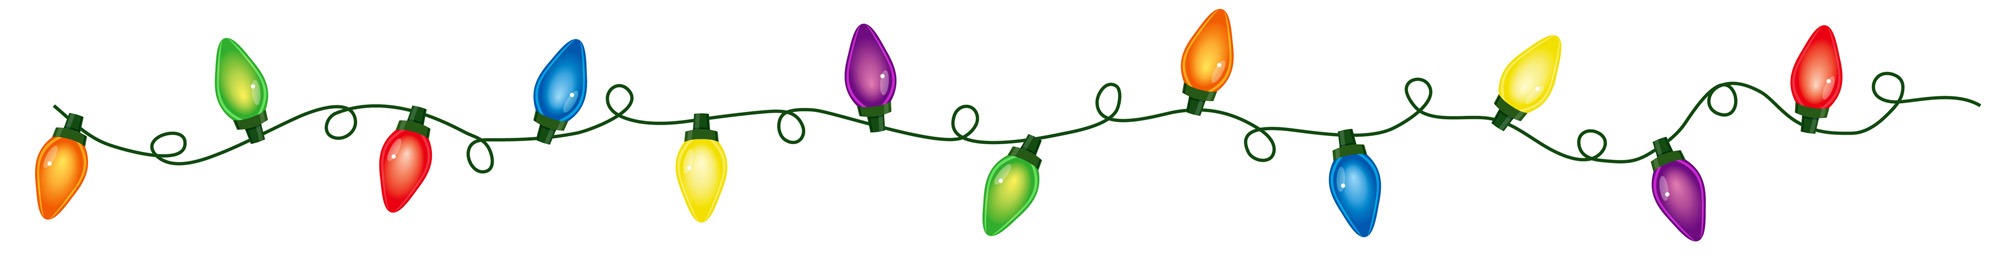 Do You String Christmas Tree Lights Top Bottom : Best Christmas Lights Border #22545 - Clipartion.com